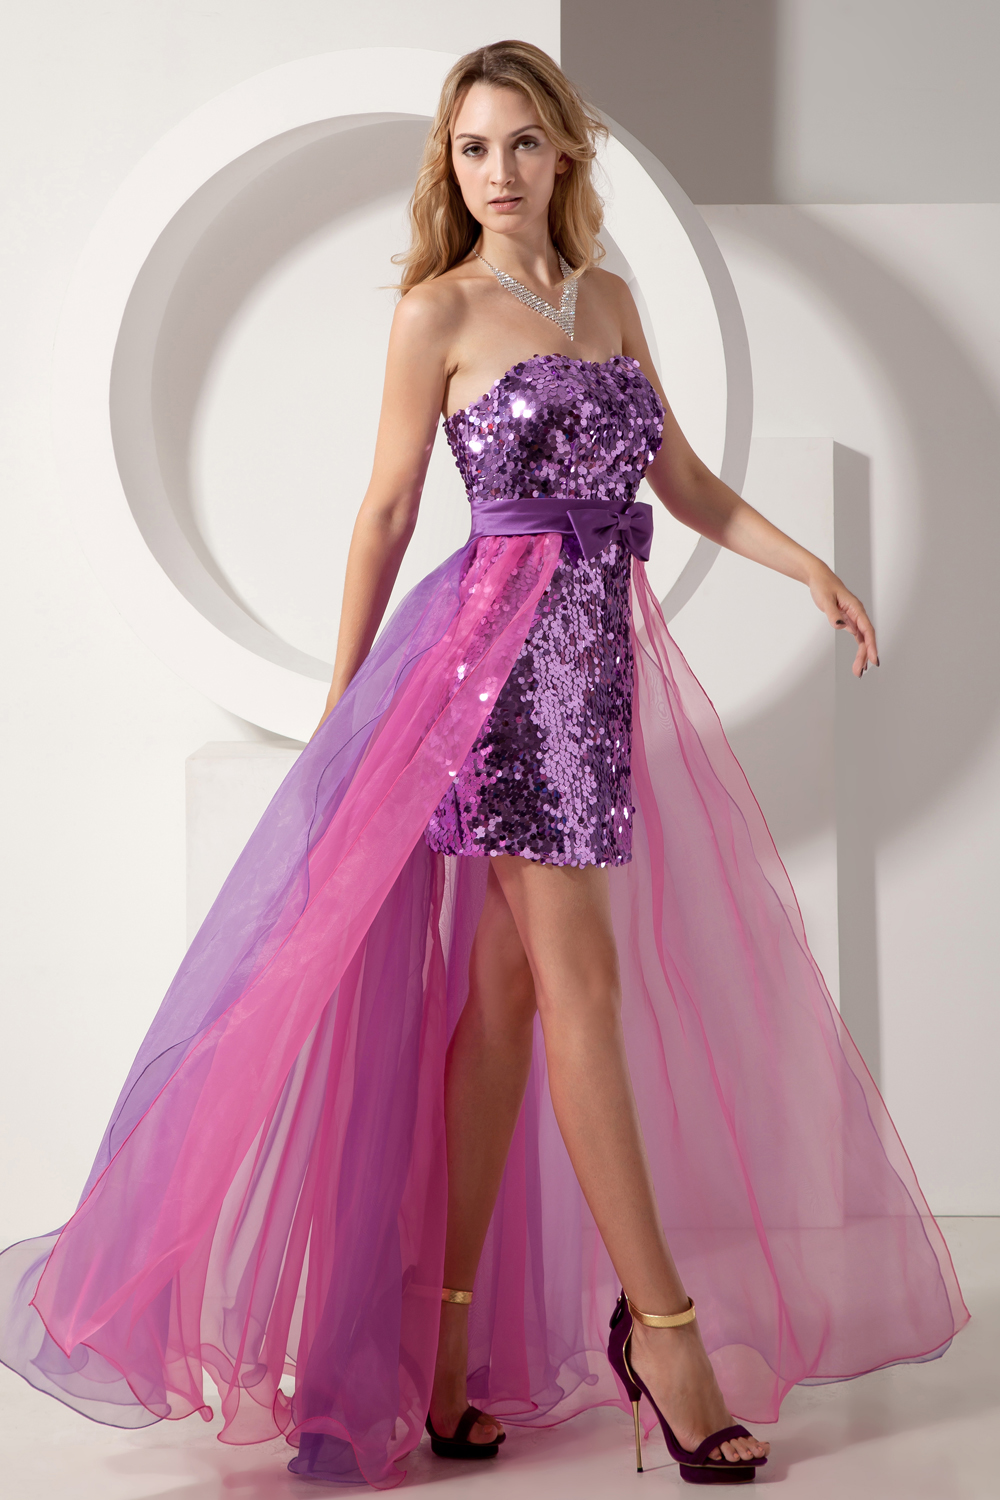 Beauty Emily Glaring sequined short   Cocktail     Dress   lavender prom   dresses   for evening party gown formal   dress   robe de soiree